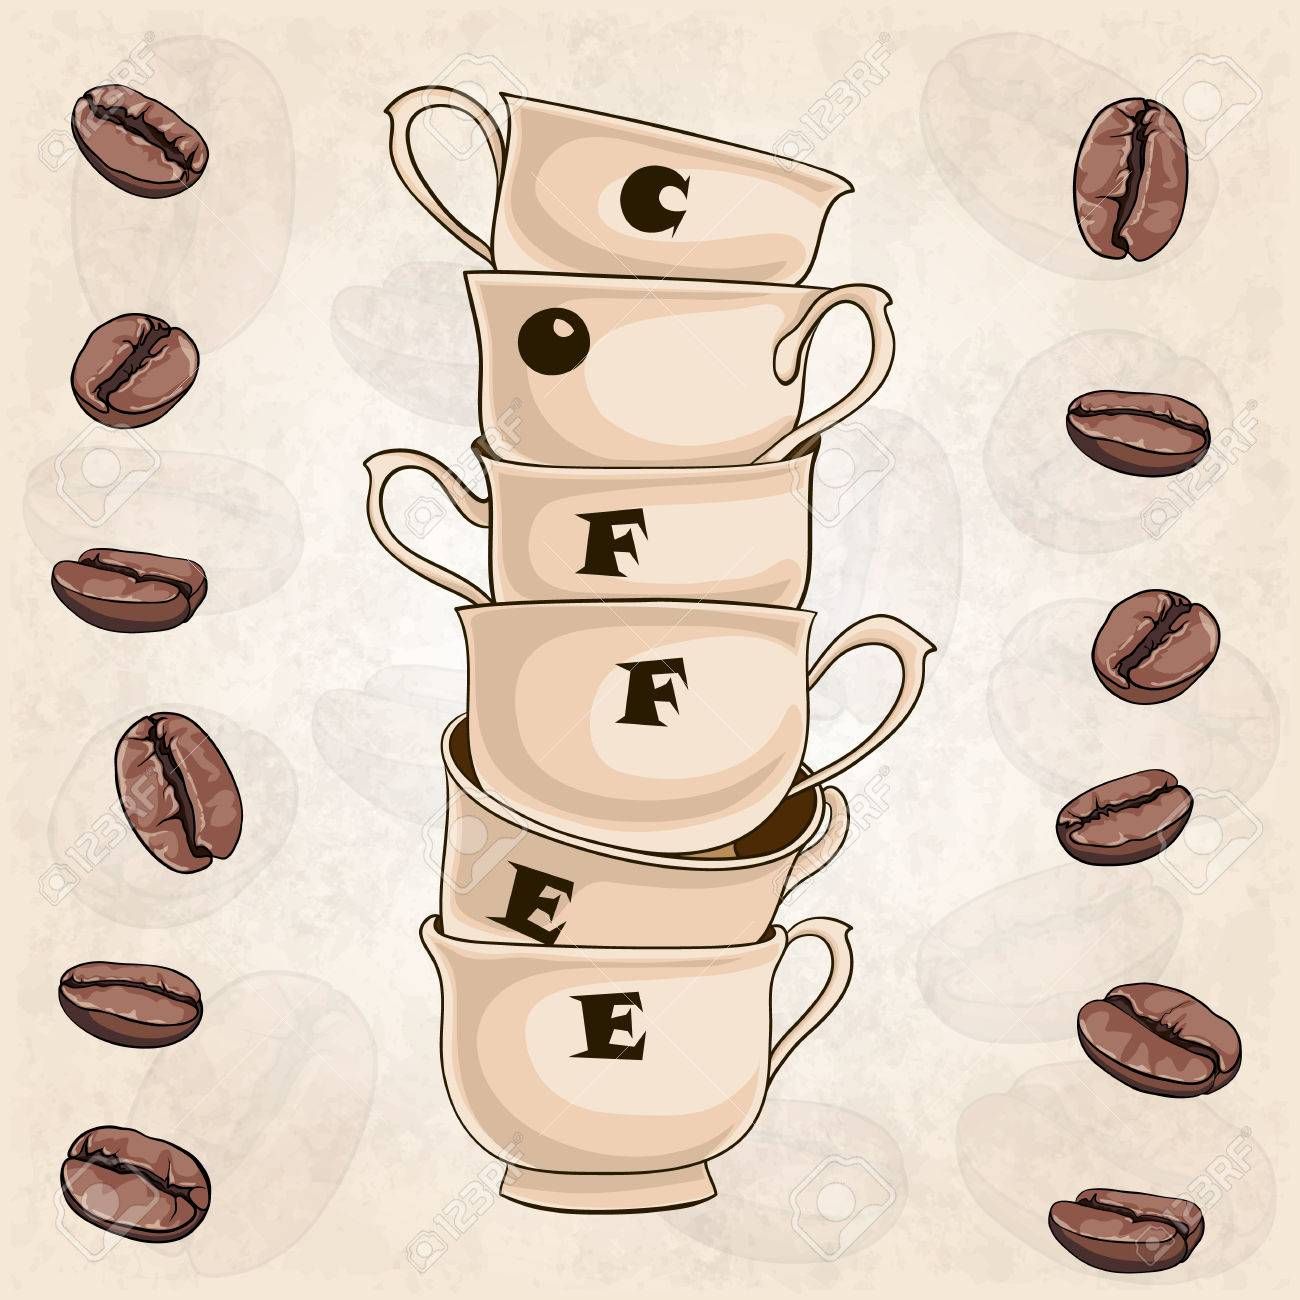 Background With Coffee Cups And Beans Coffee Shop Menu Design Royalty Free Cliparts Vectors And Stock Illustration Image 62125820